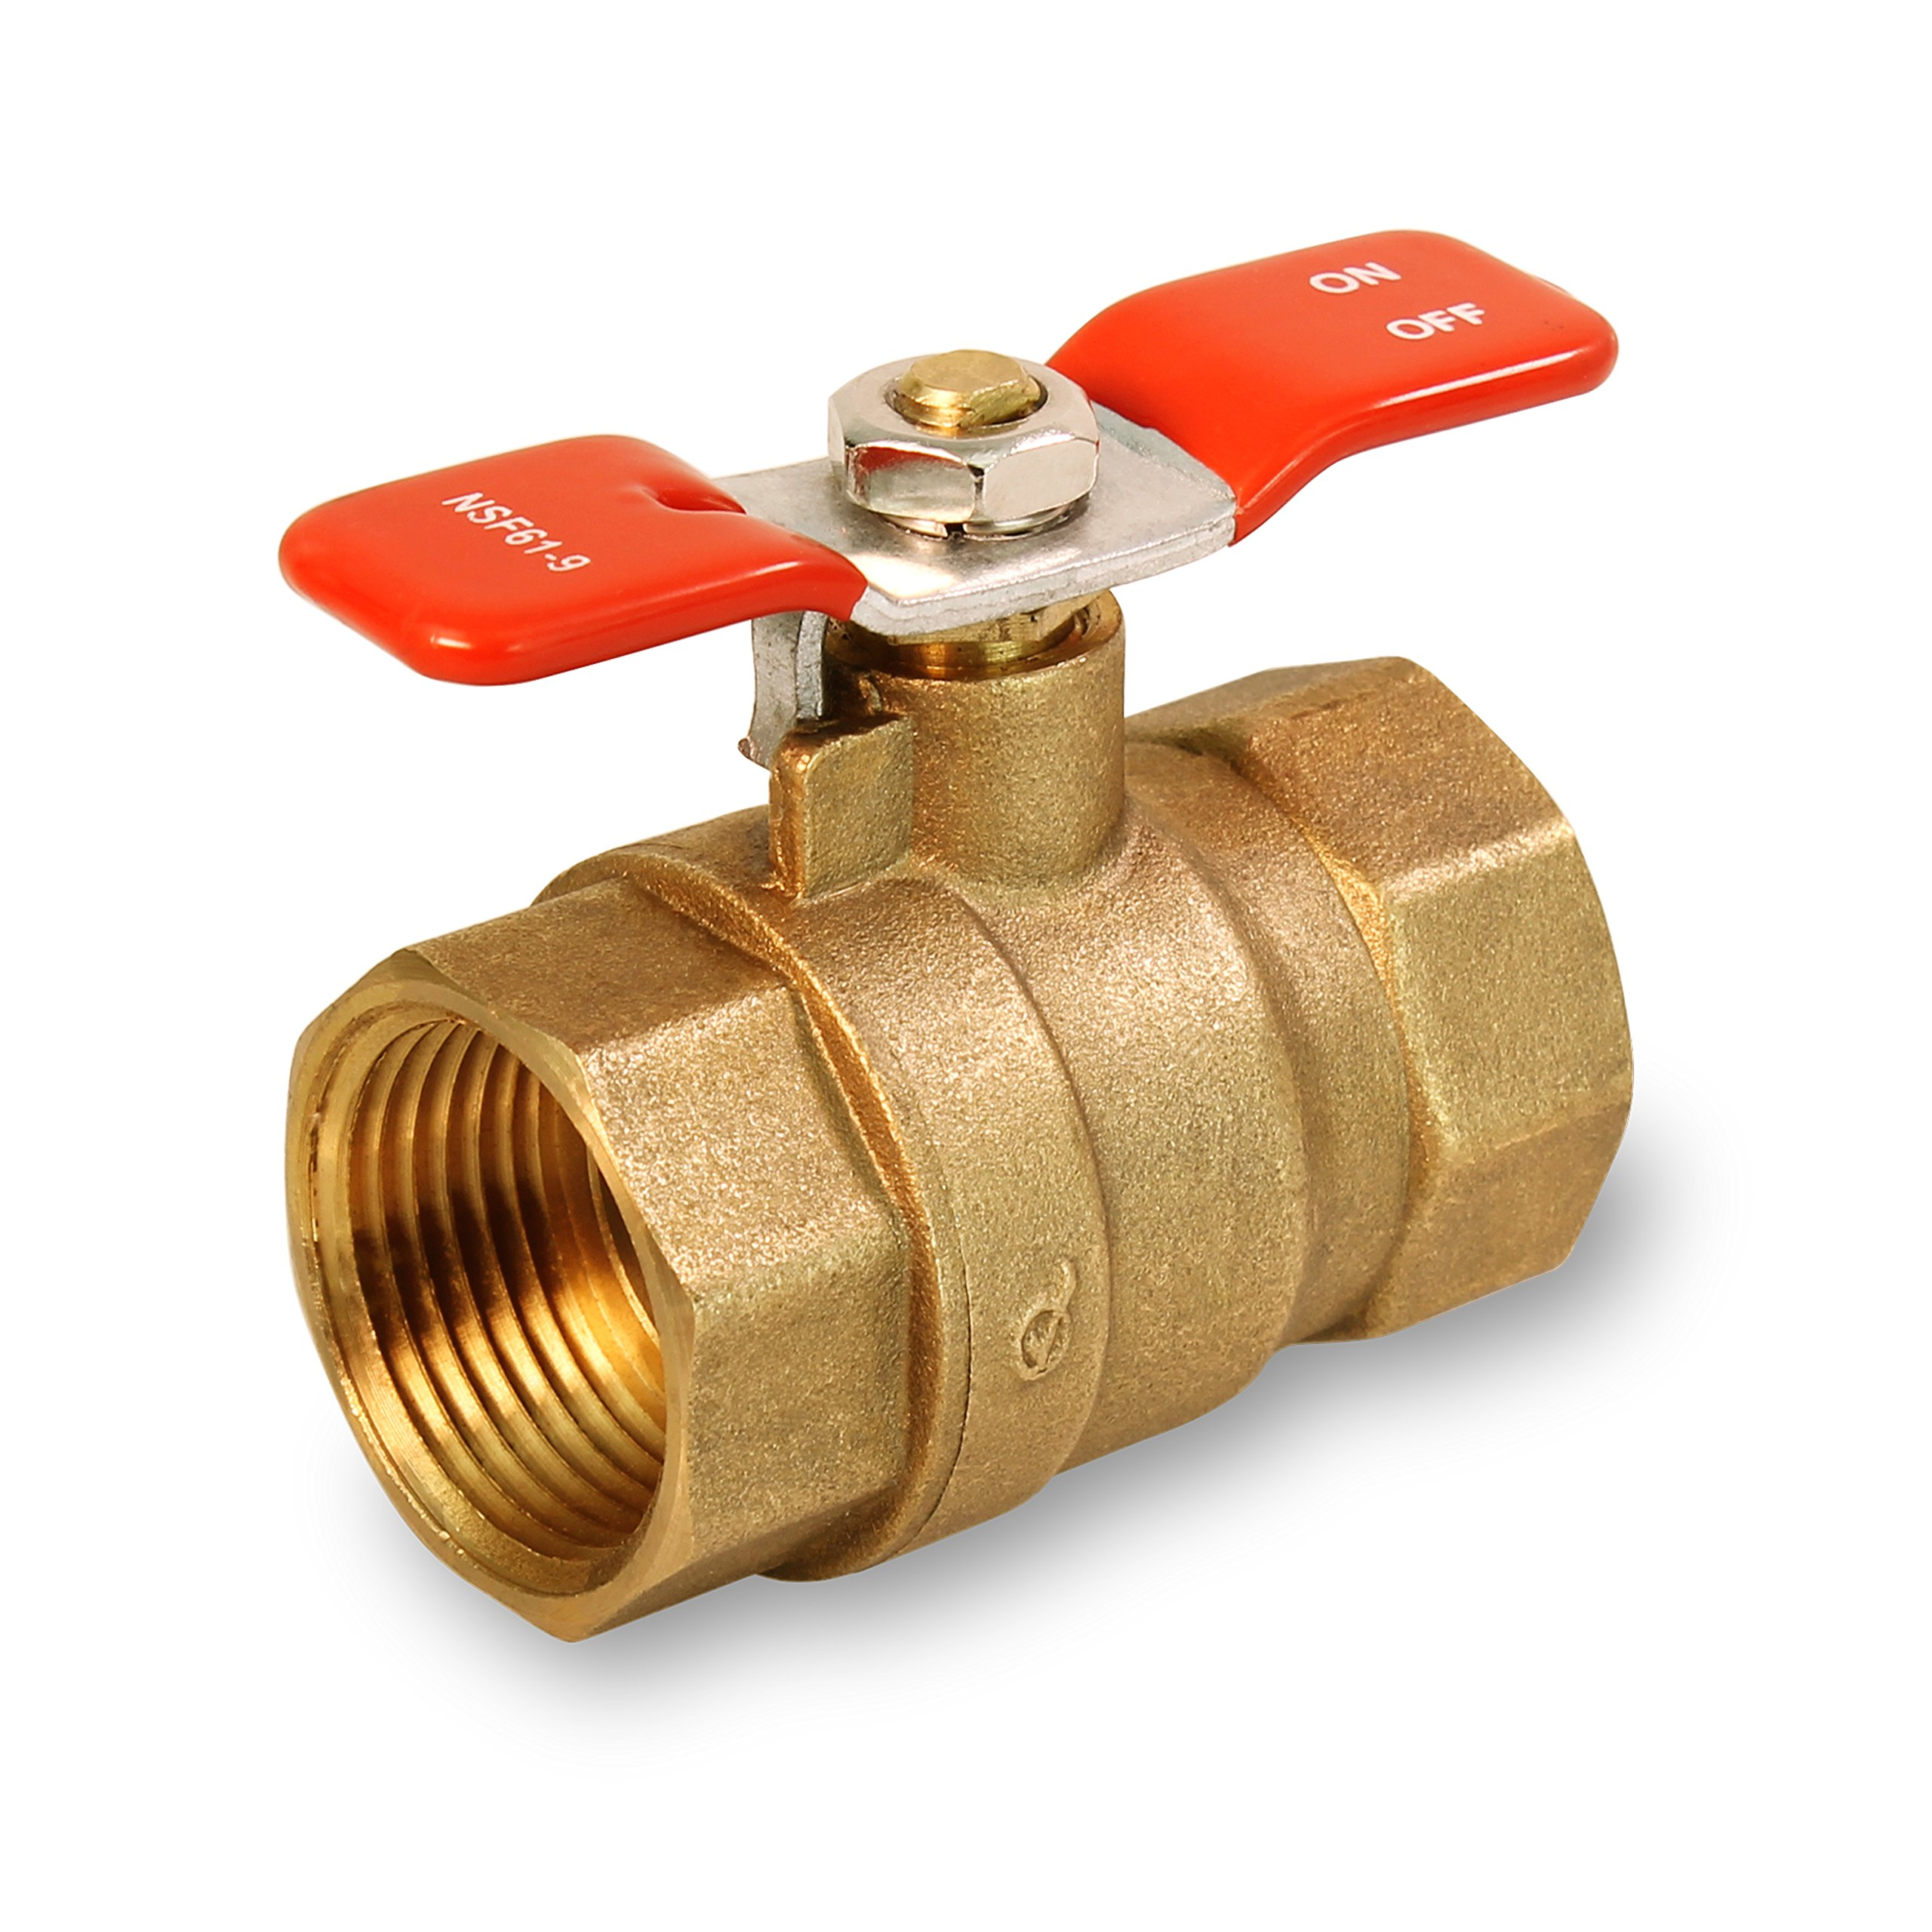 Everflow Supplies 615T001-NL Lead Free Full Port IPS Threaded Ball Valve with Tee Handle, 1-Inch